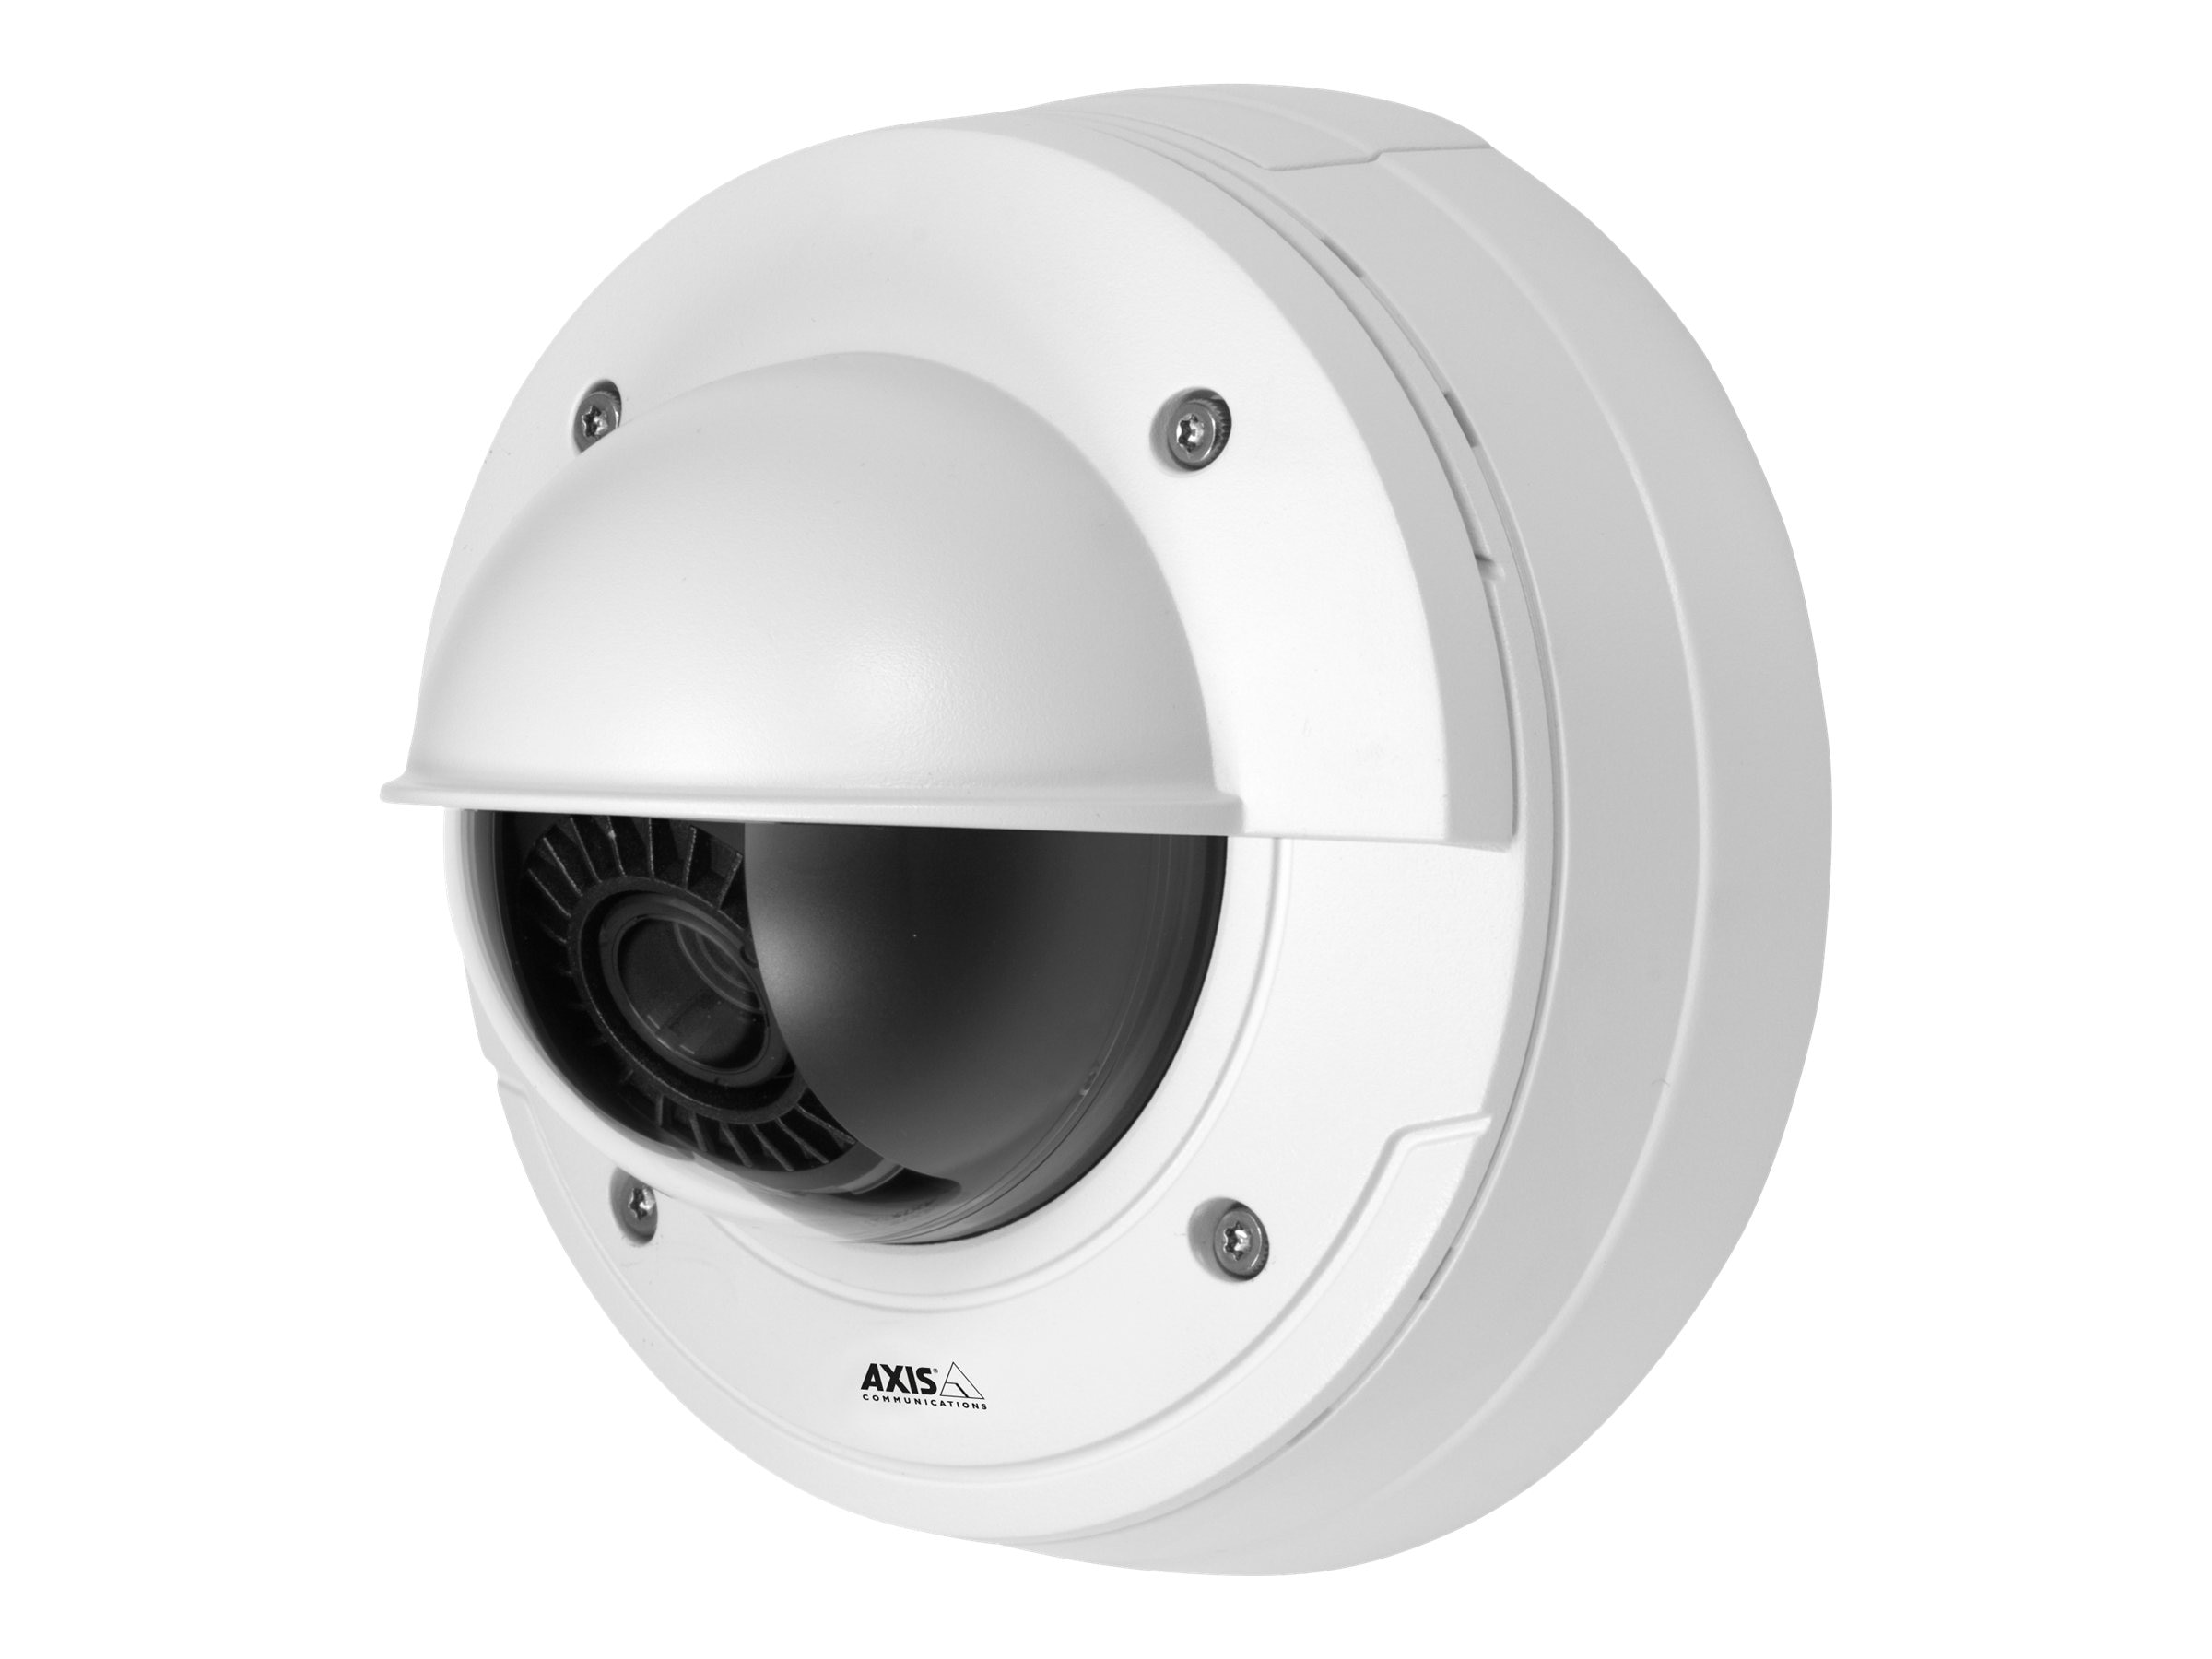 Axis P3367-VE Fixed Vandal-Proof Dome, Outdoor, 0407-001, 13340944, Cameras - Security